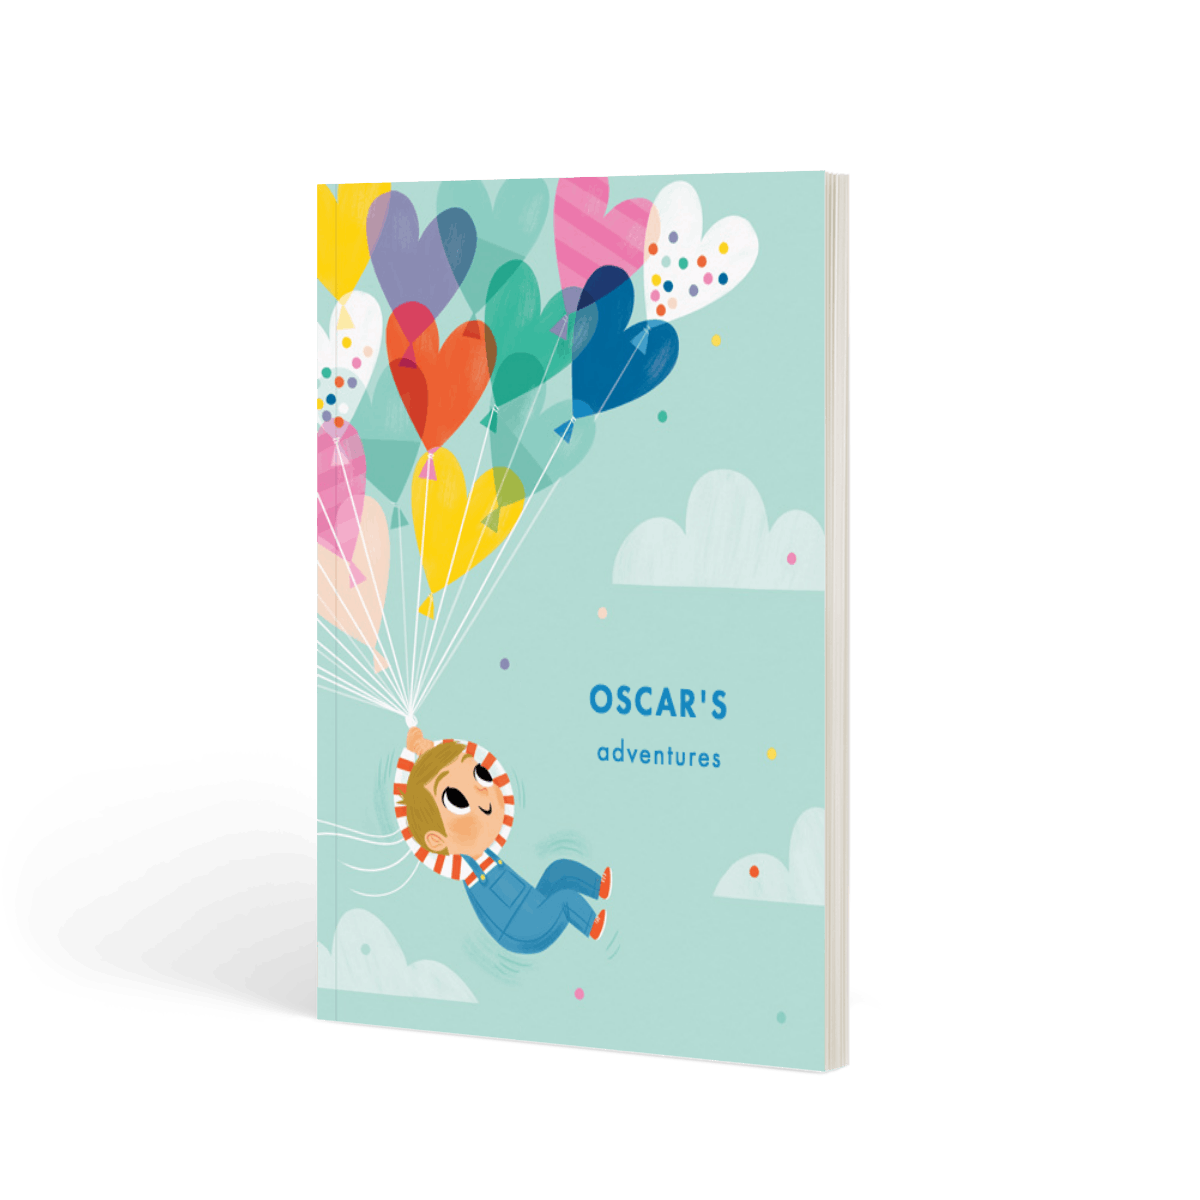 Https%3a%2f%2fwww.papier.com%2fproduct image%2f31619%2f6%2fballoon boy iii 7942 front 1511372706.png?ixlib=rb 1.1